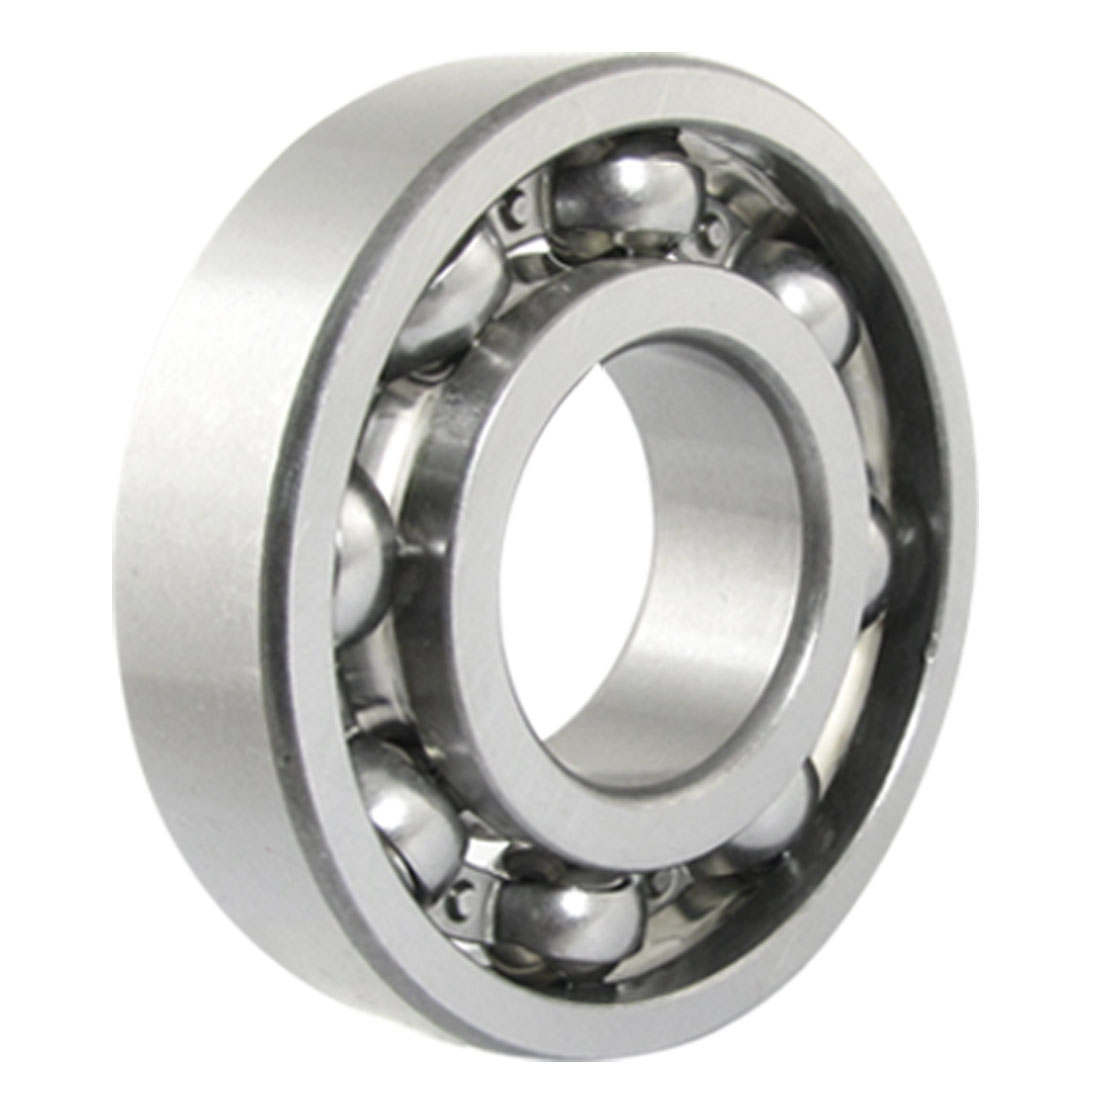 6307 Open 35 x 80 x 21mm Deep Groove Radial Ball Bearing